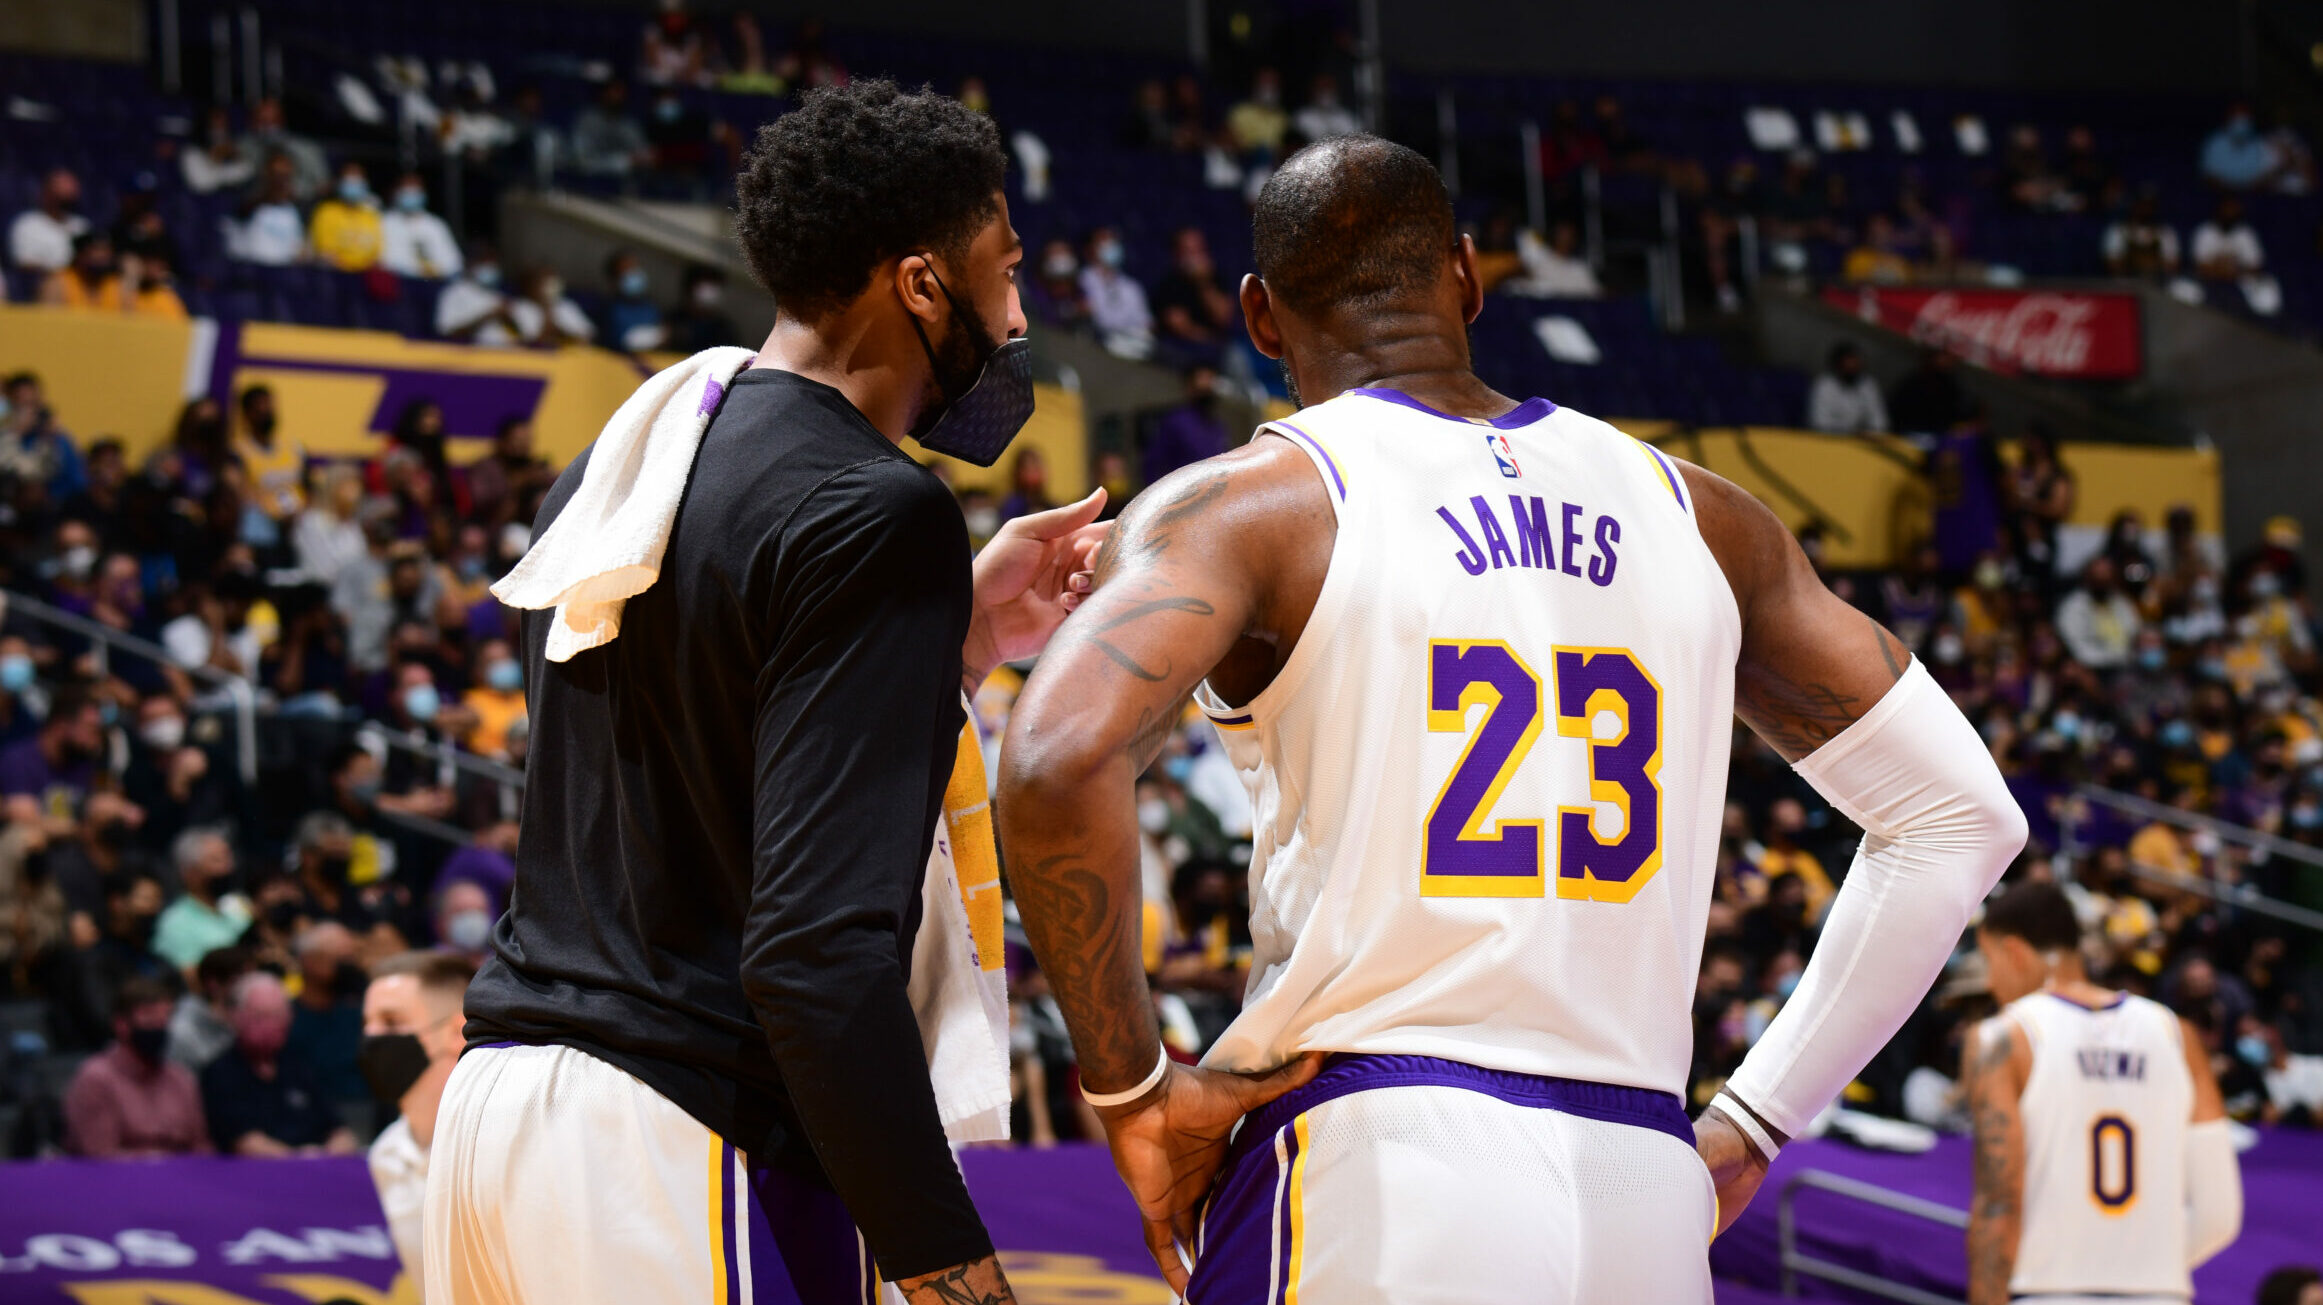 Anthony Davis injury changes complexion of Suns-Lakers series